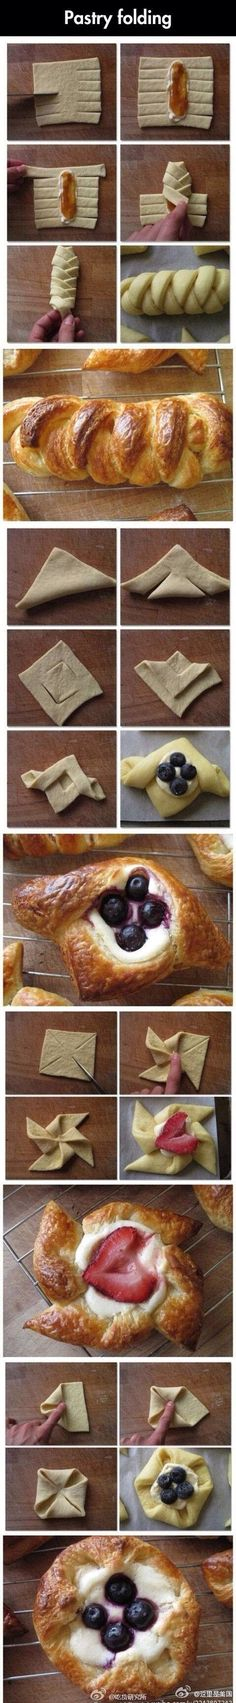 Pastry Folding: recipe ideas that look great.